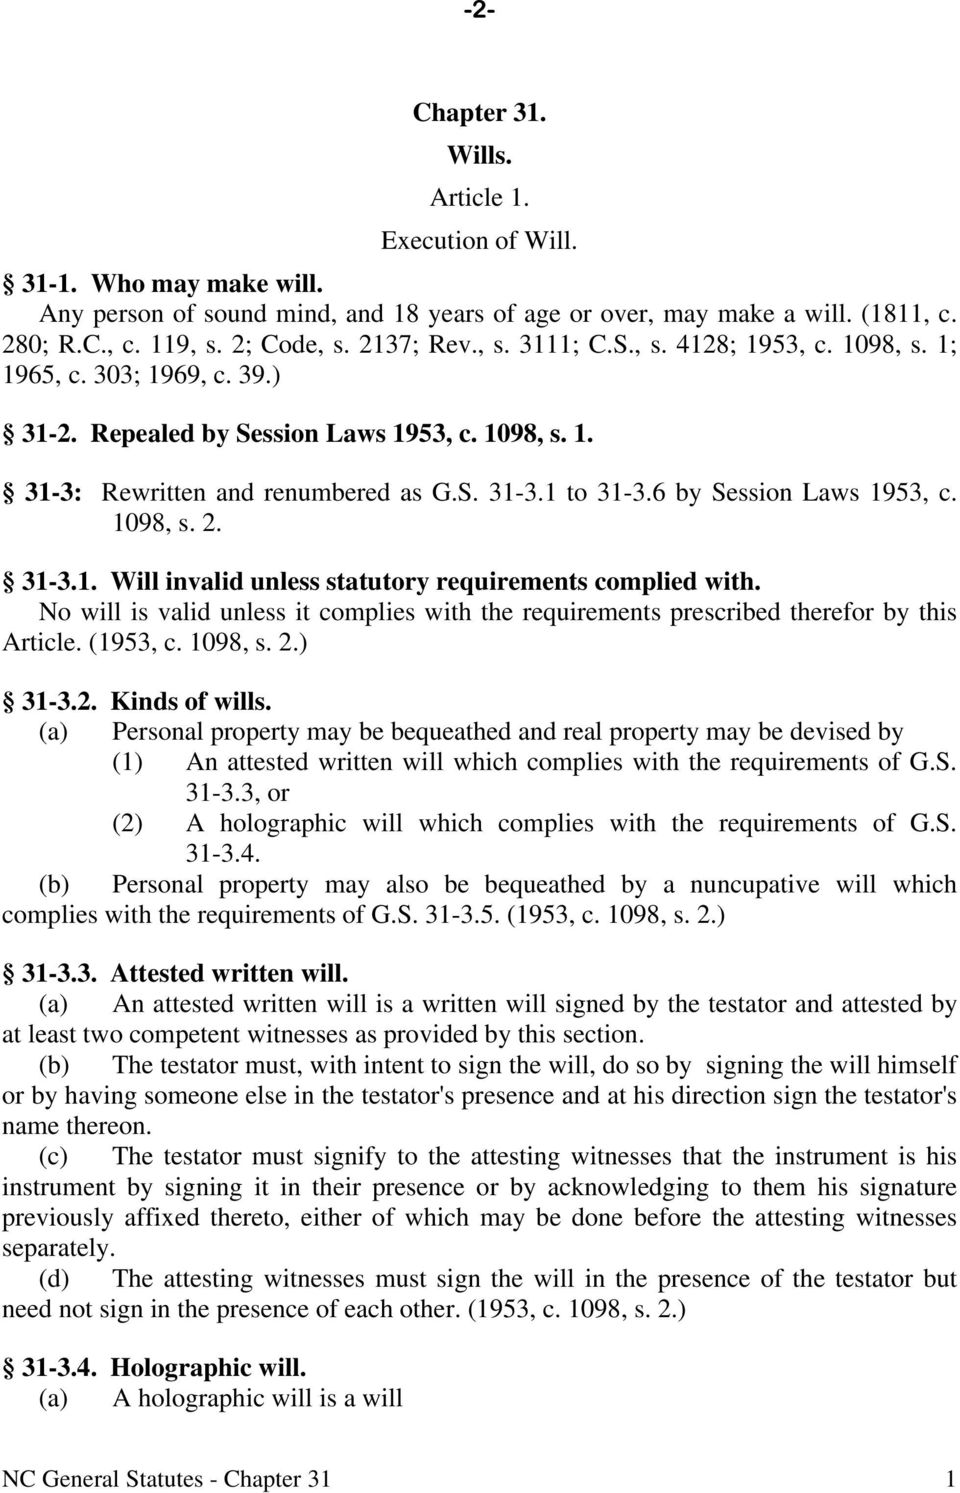 6 by Session Laws 1953, c. 1098, s. 2. 31-3.1. Will invalid unless statutory requirements complied with. No will is valid unless it complies with the requirements prescribed therefor by this Article.